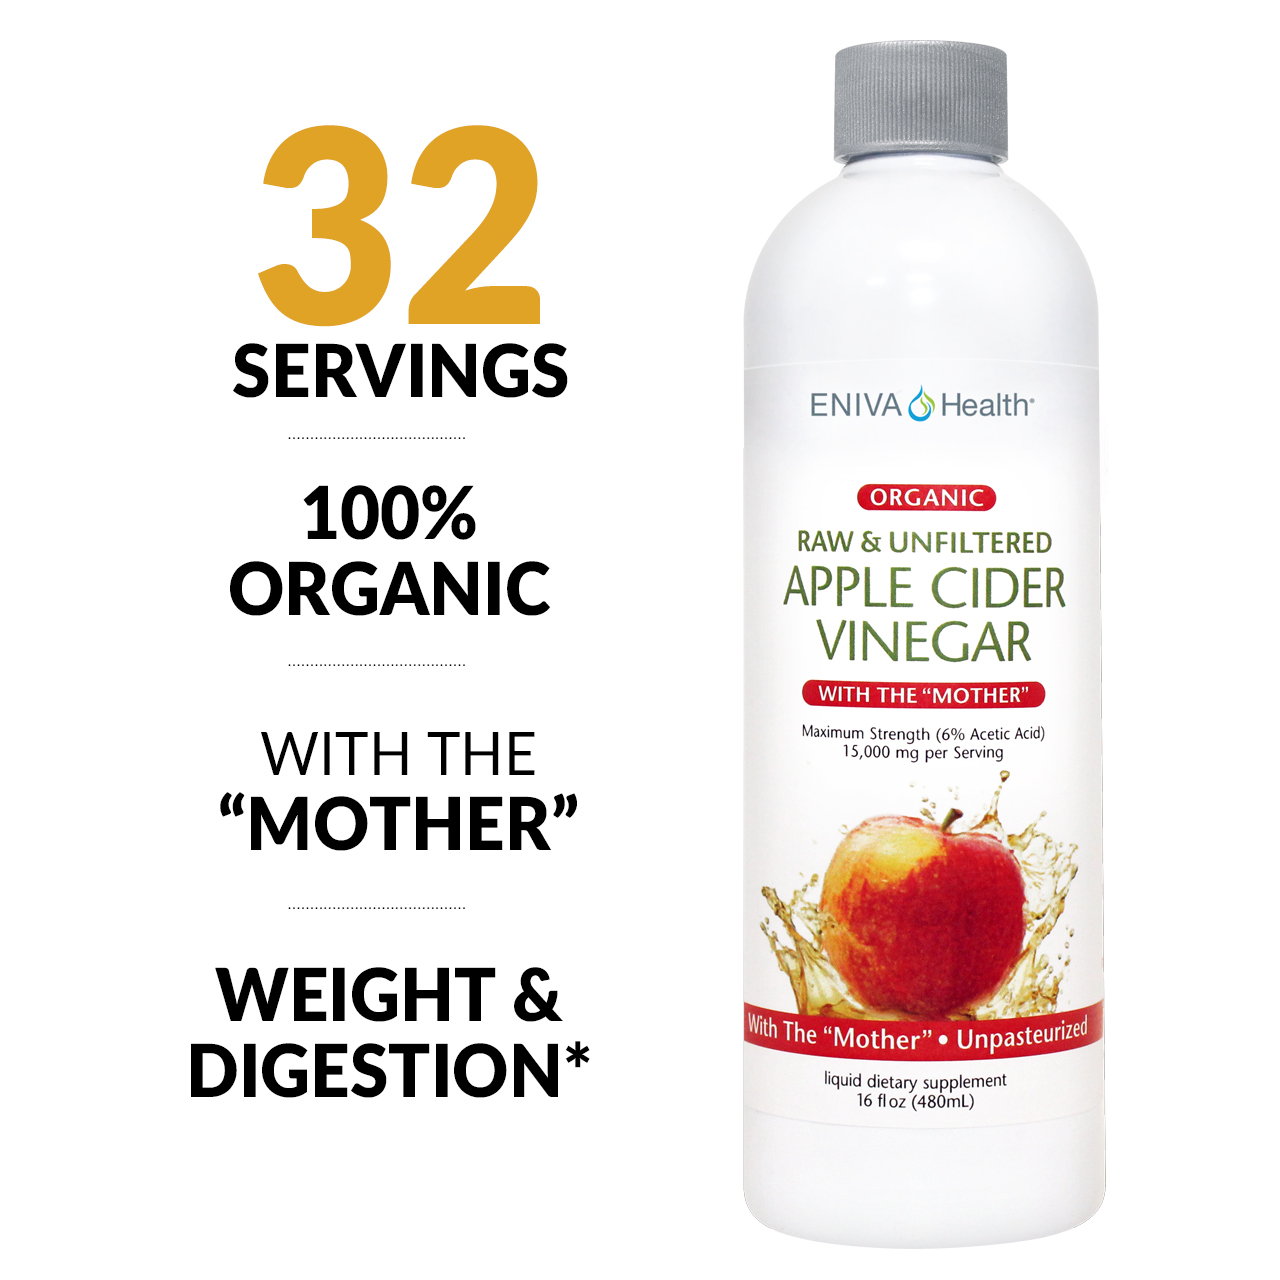 apple-cider-vinegar-mini-text-2.jpg